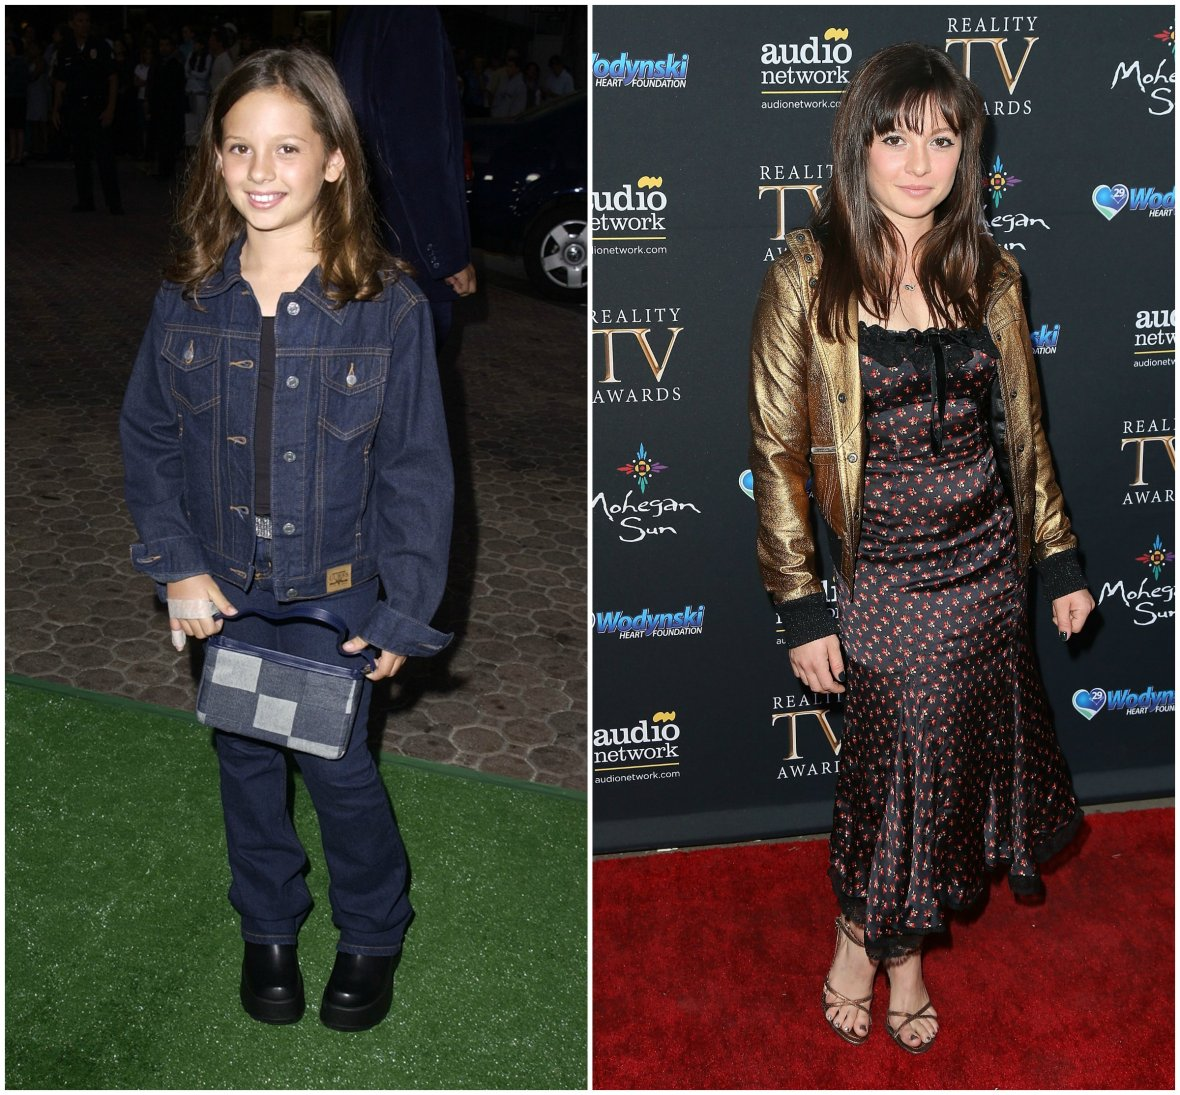 7th heaven ruthie then and now